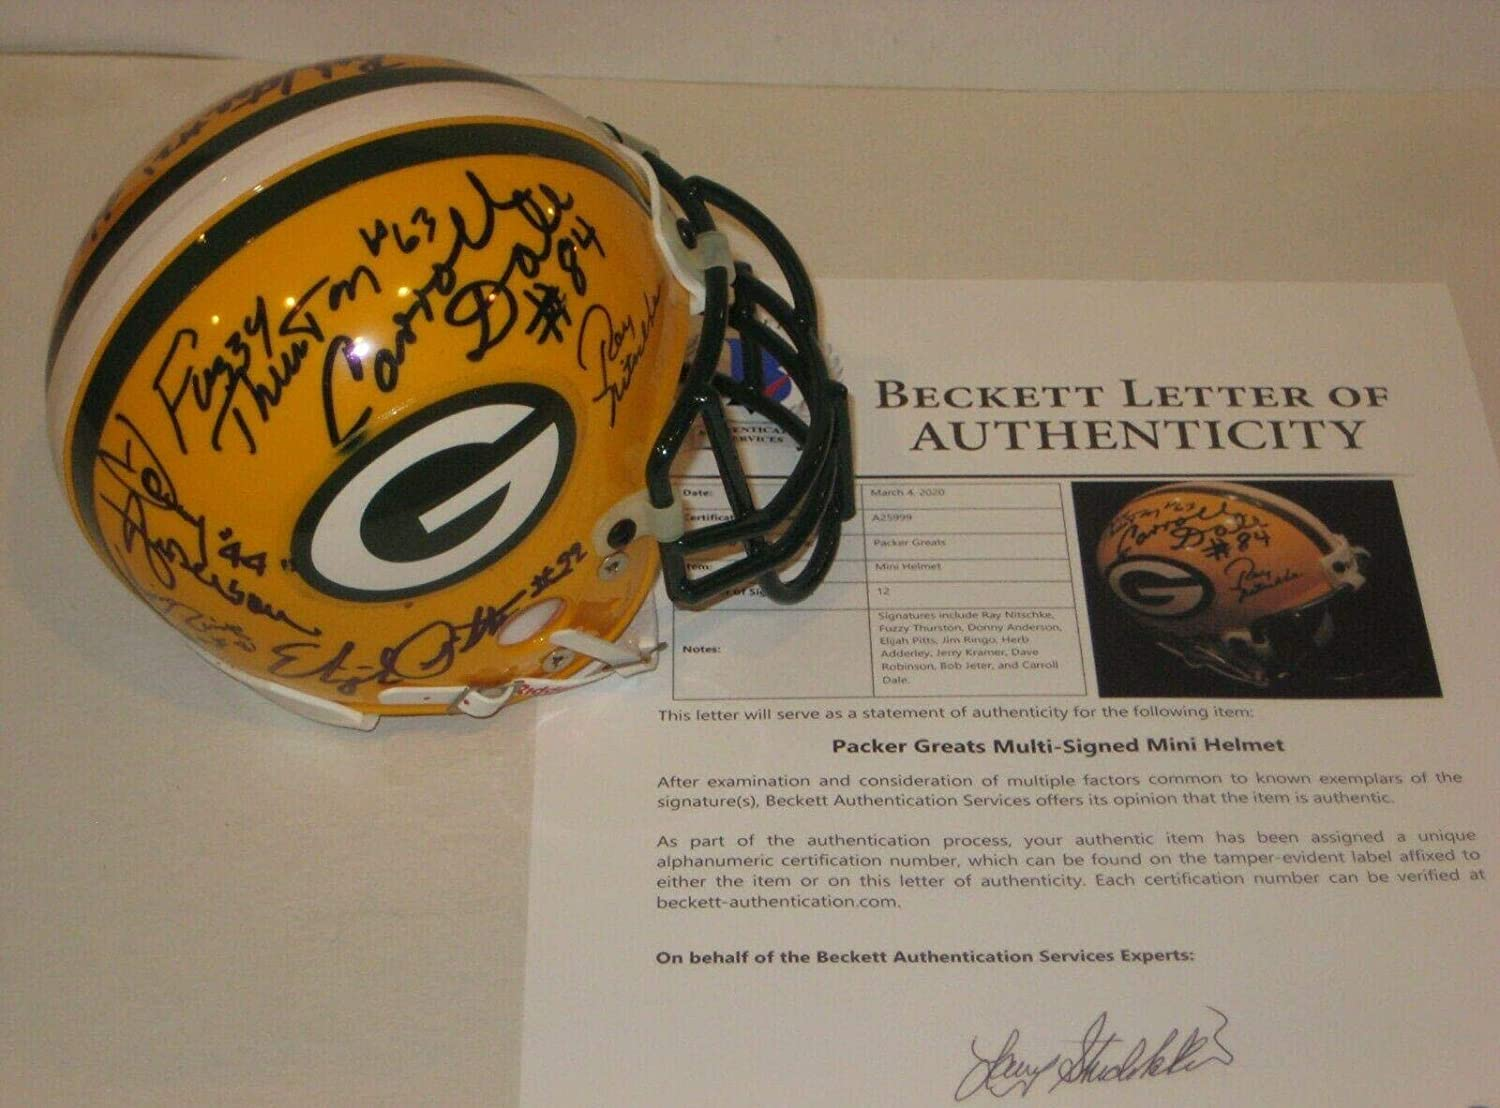 NITSCHKE, THURSTON & 10 Other Greats Signed PACKERS Mini-helmet w/Beckett LOA - Beckett Authentication